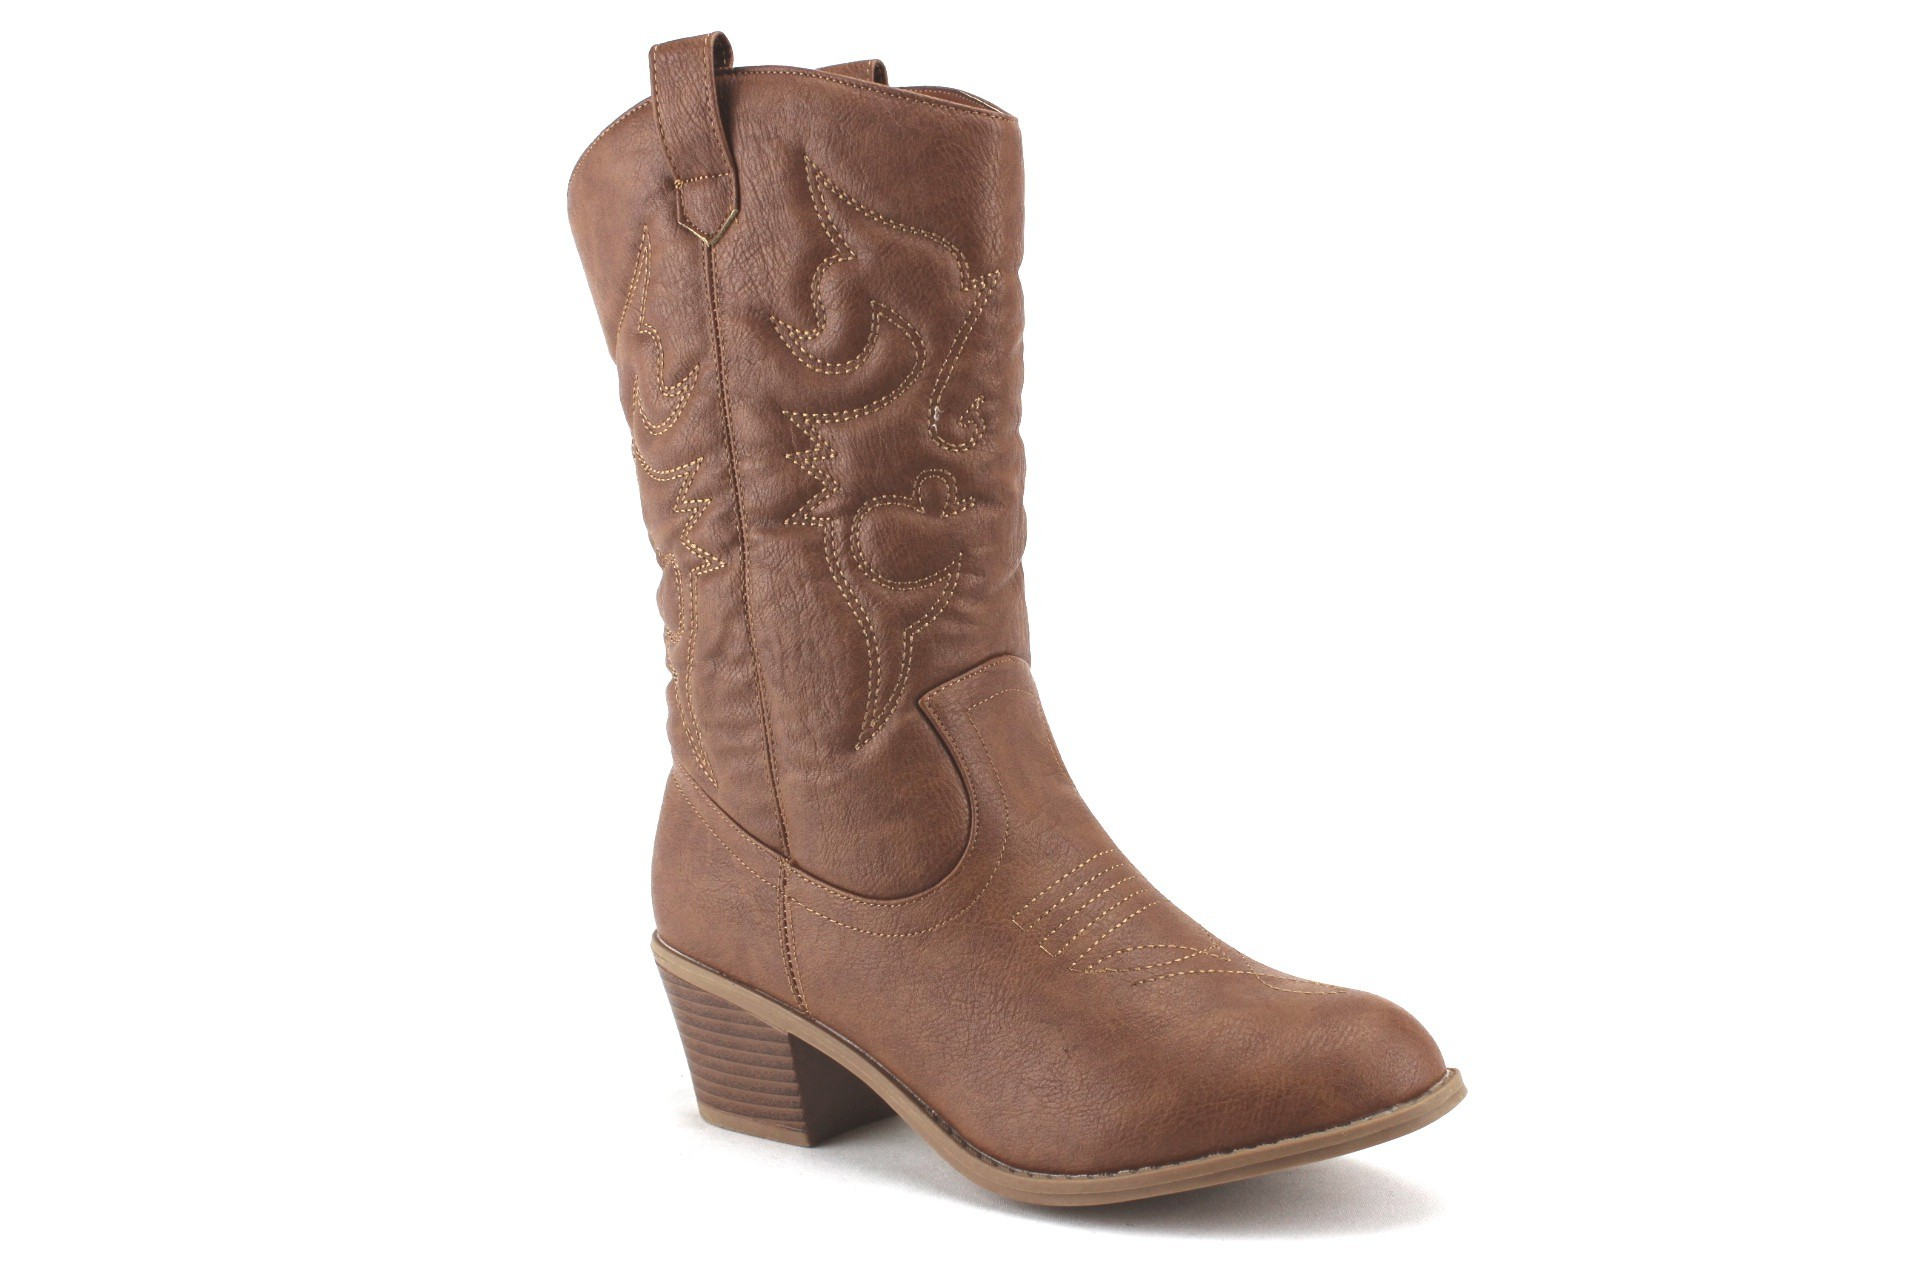 Western style fashion boots